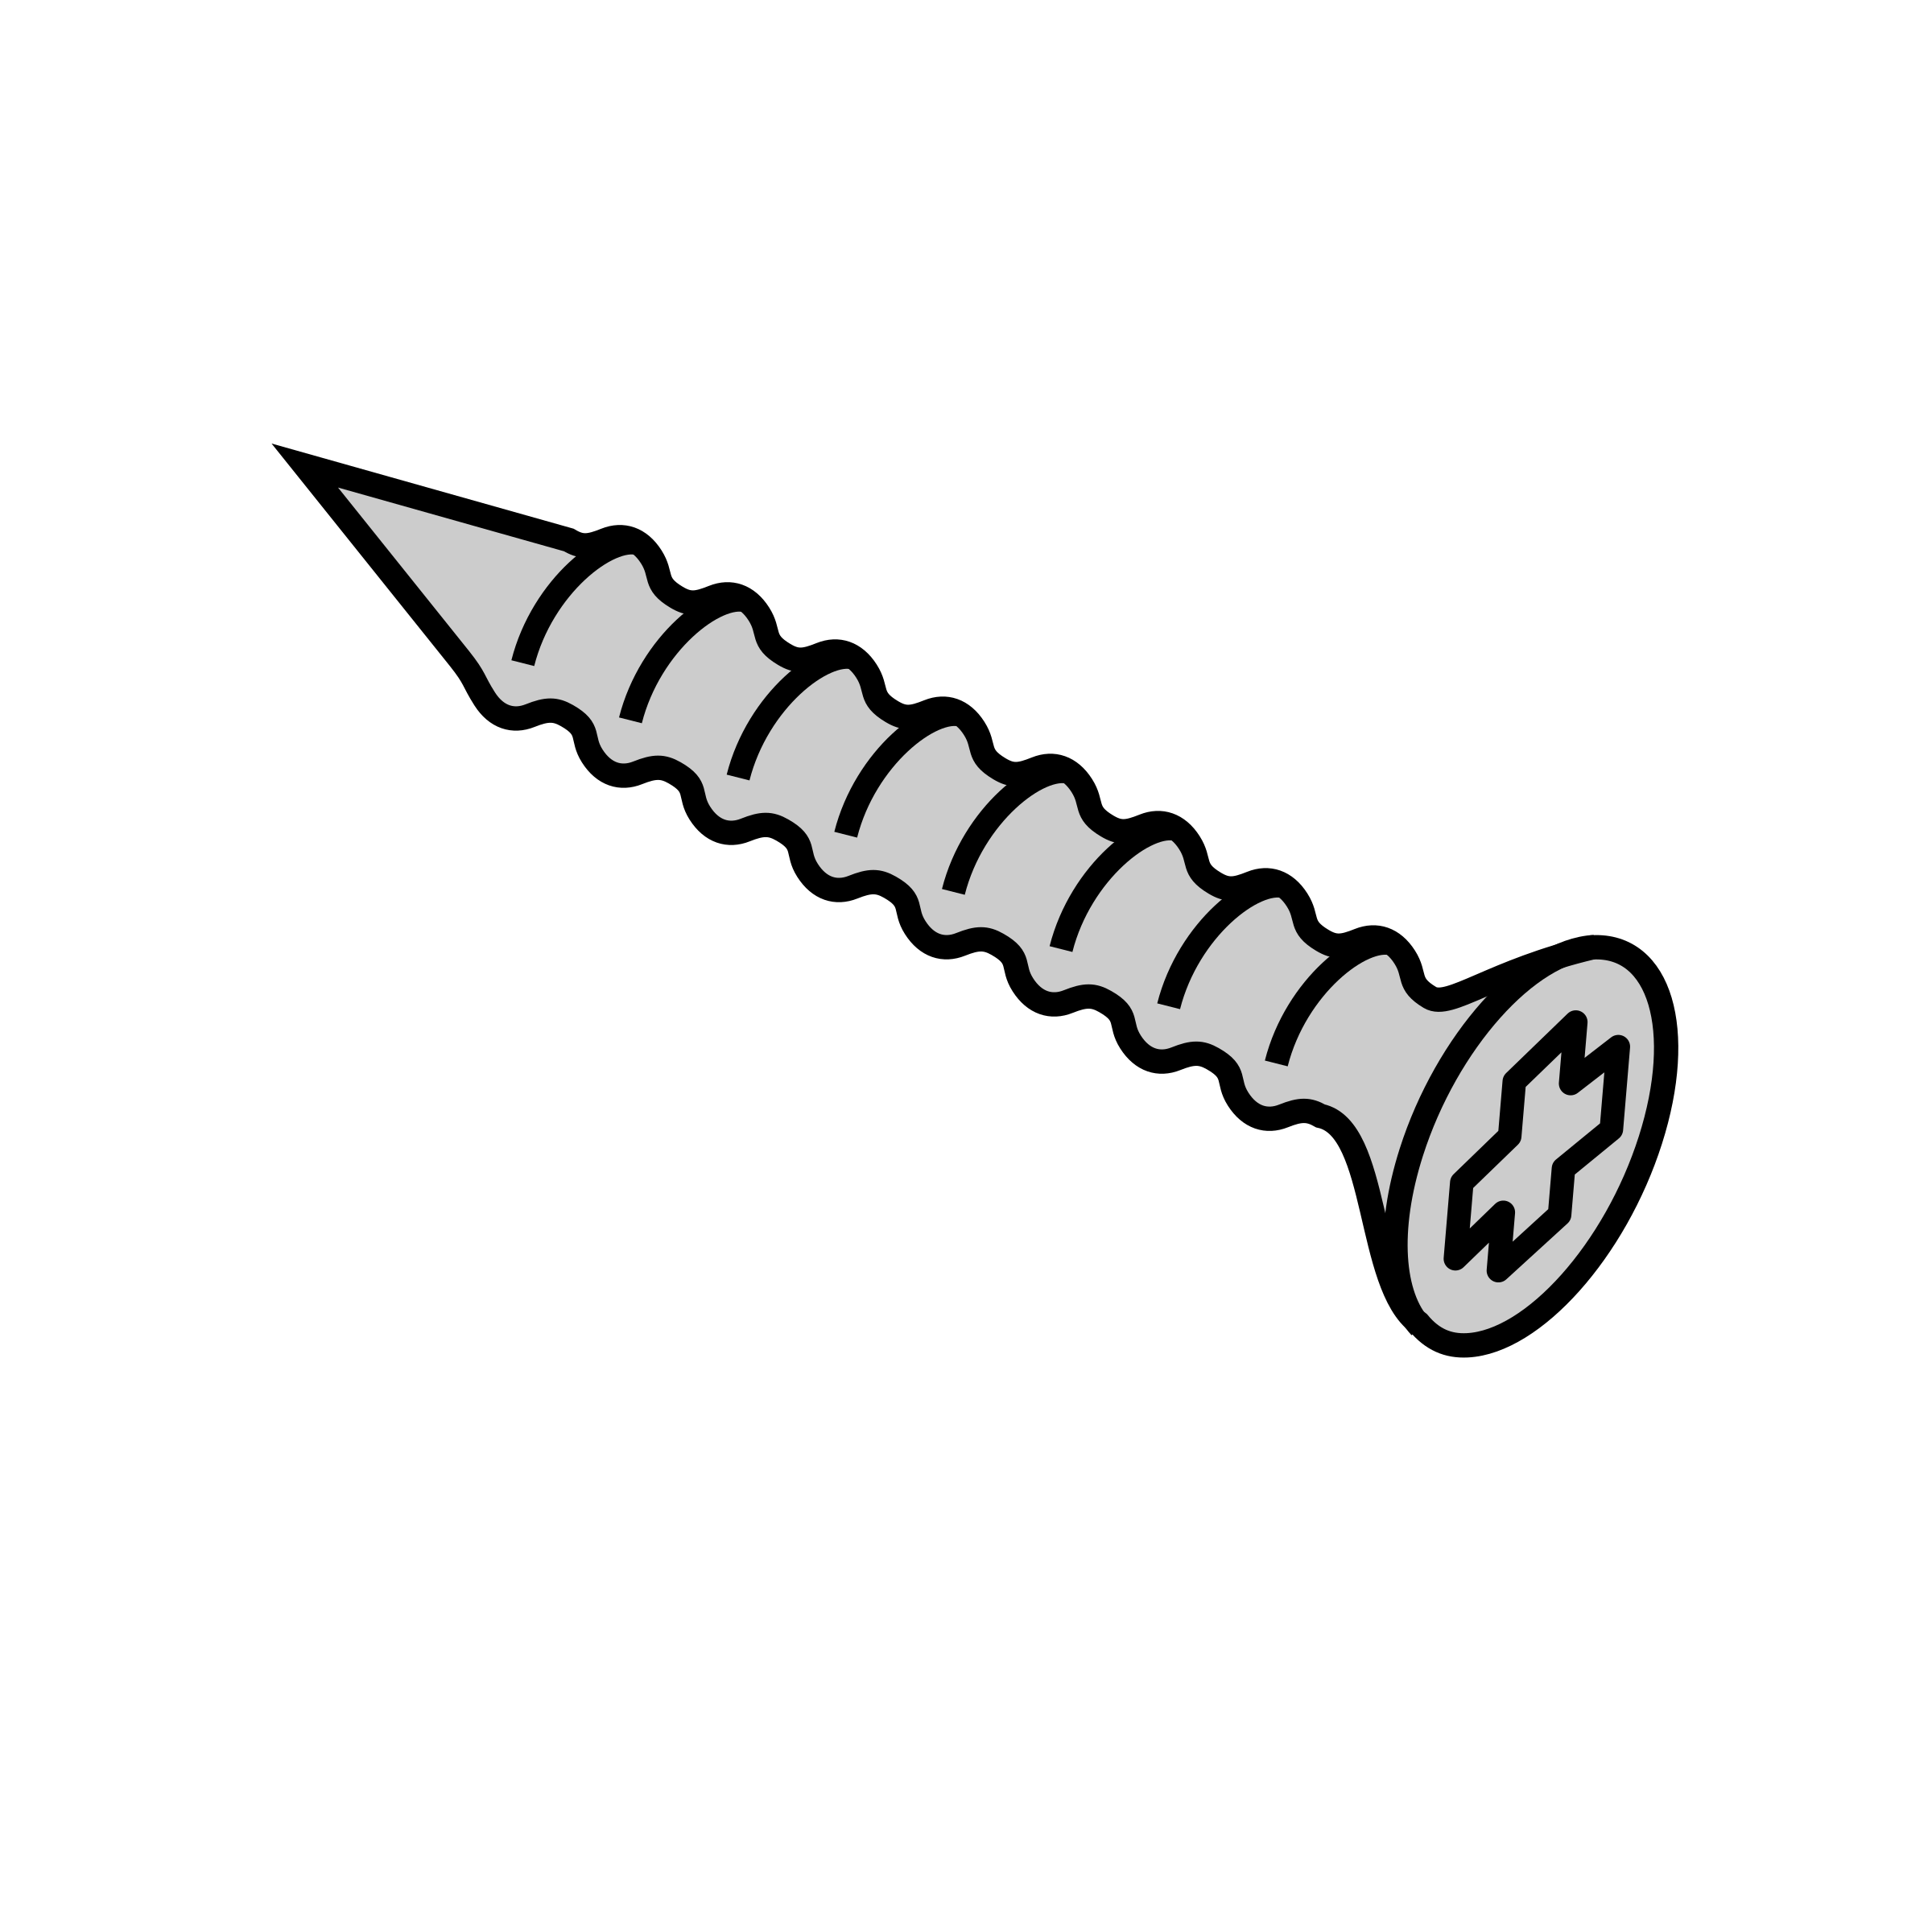 Clipart - Screw